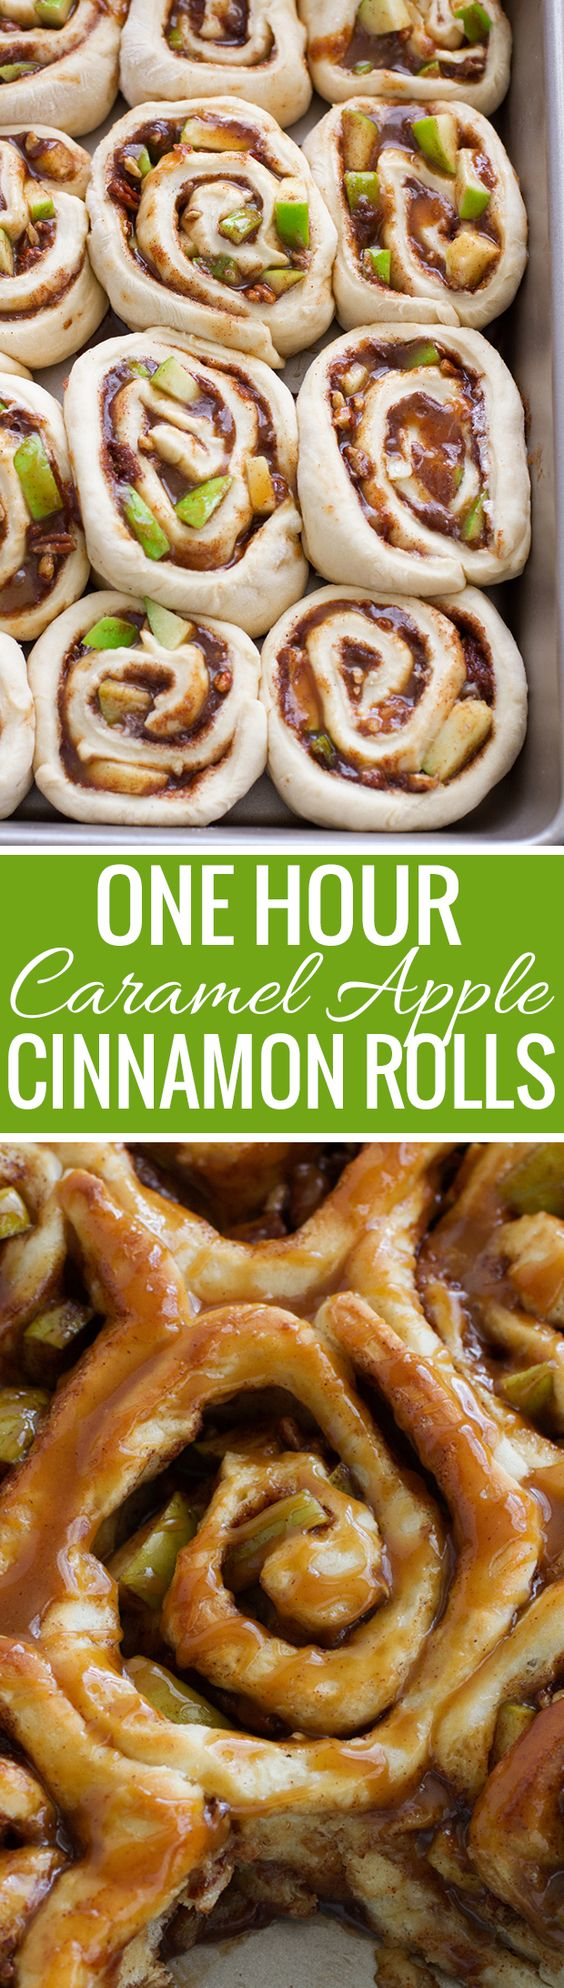 One Hour Caramel Apple Cinnamon Rolls Recipe | Little Spice Jar - The BEST Cinnamon Rolls Recipes - Perfect Treats for Breakfast, Brunch, Desserts, Christmas Morning, Special Occasions and Holidays #cinnamonrolls #cinnamon #cinnamontreats #cinnamonrollsrecipes #cinnamondesserts #breakfastrolls #sweetrolls